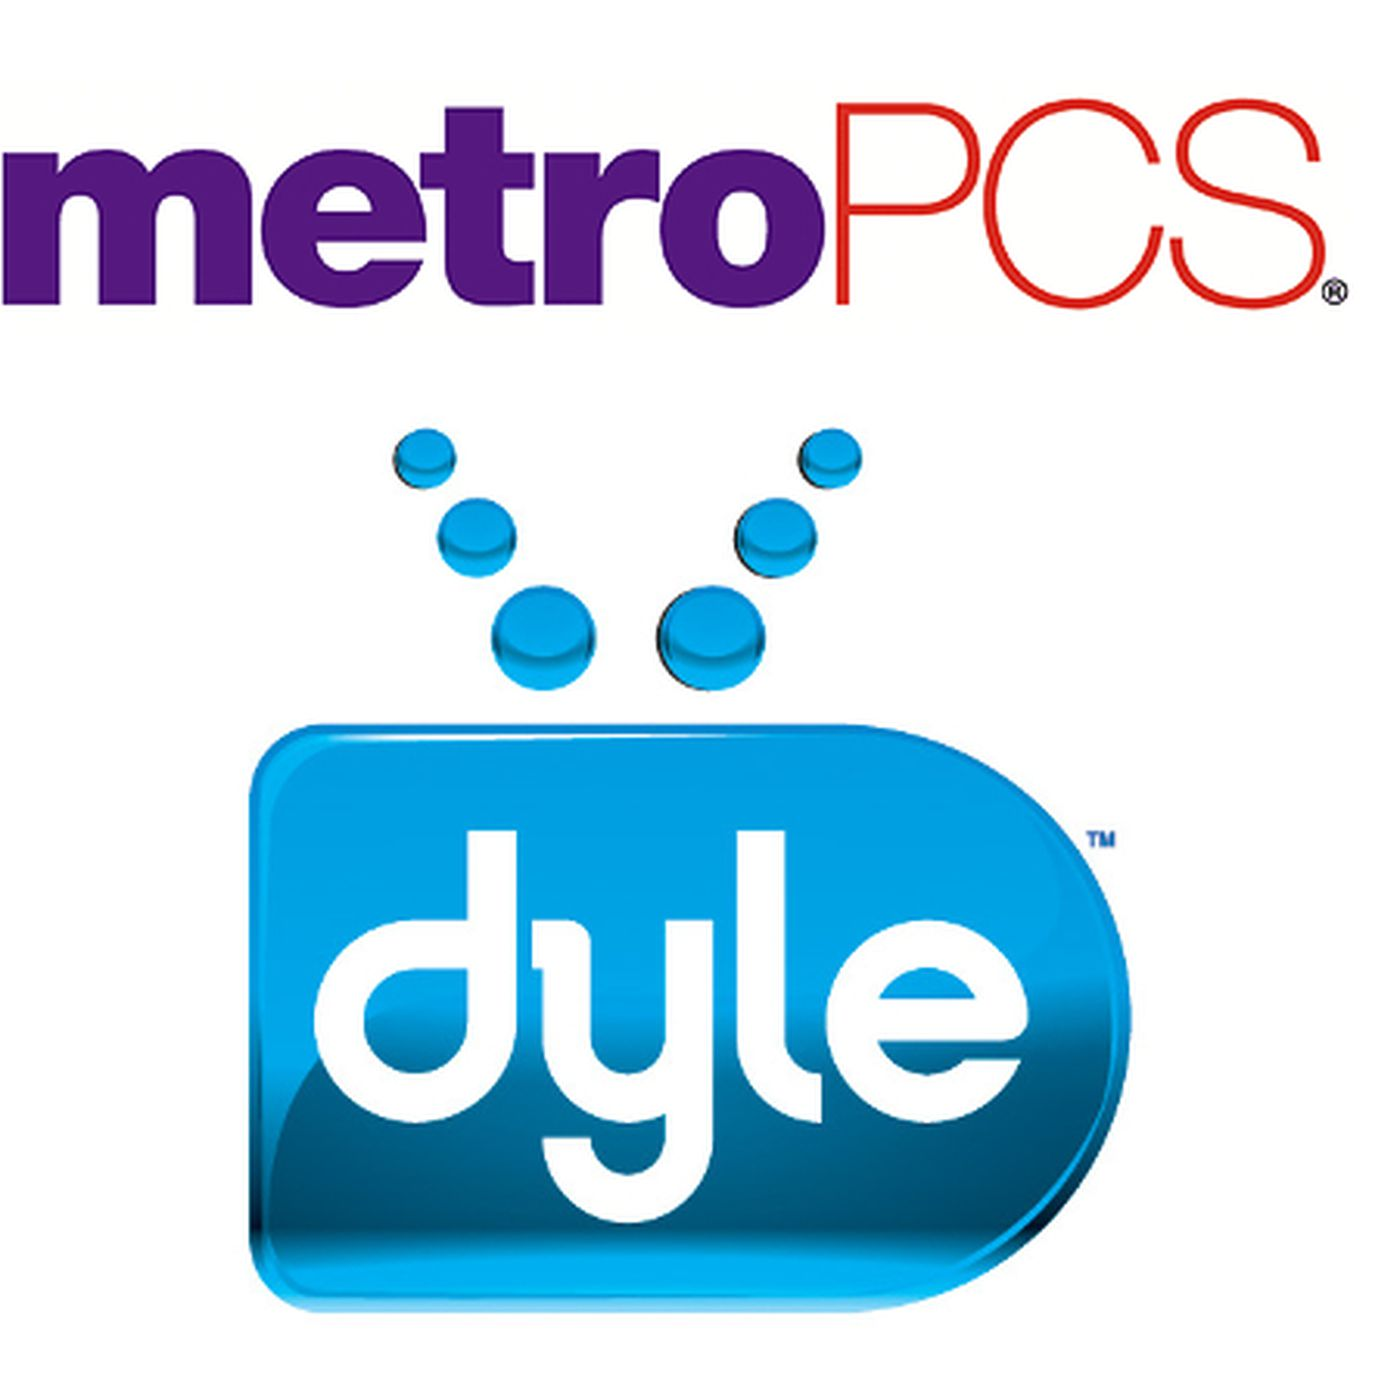 MetroPCS plans to offer Dyle Mobile TV services this year - The Verge